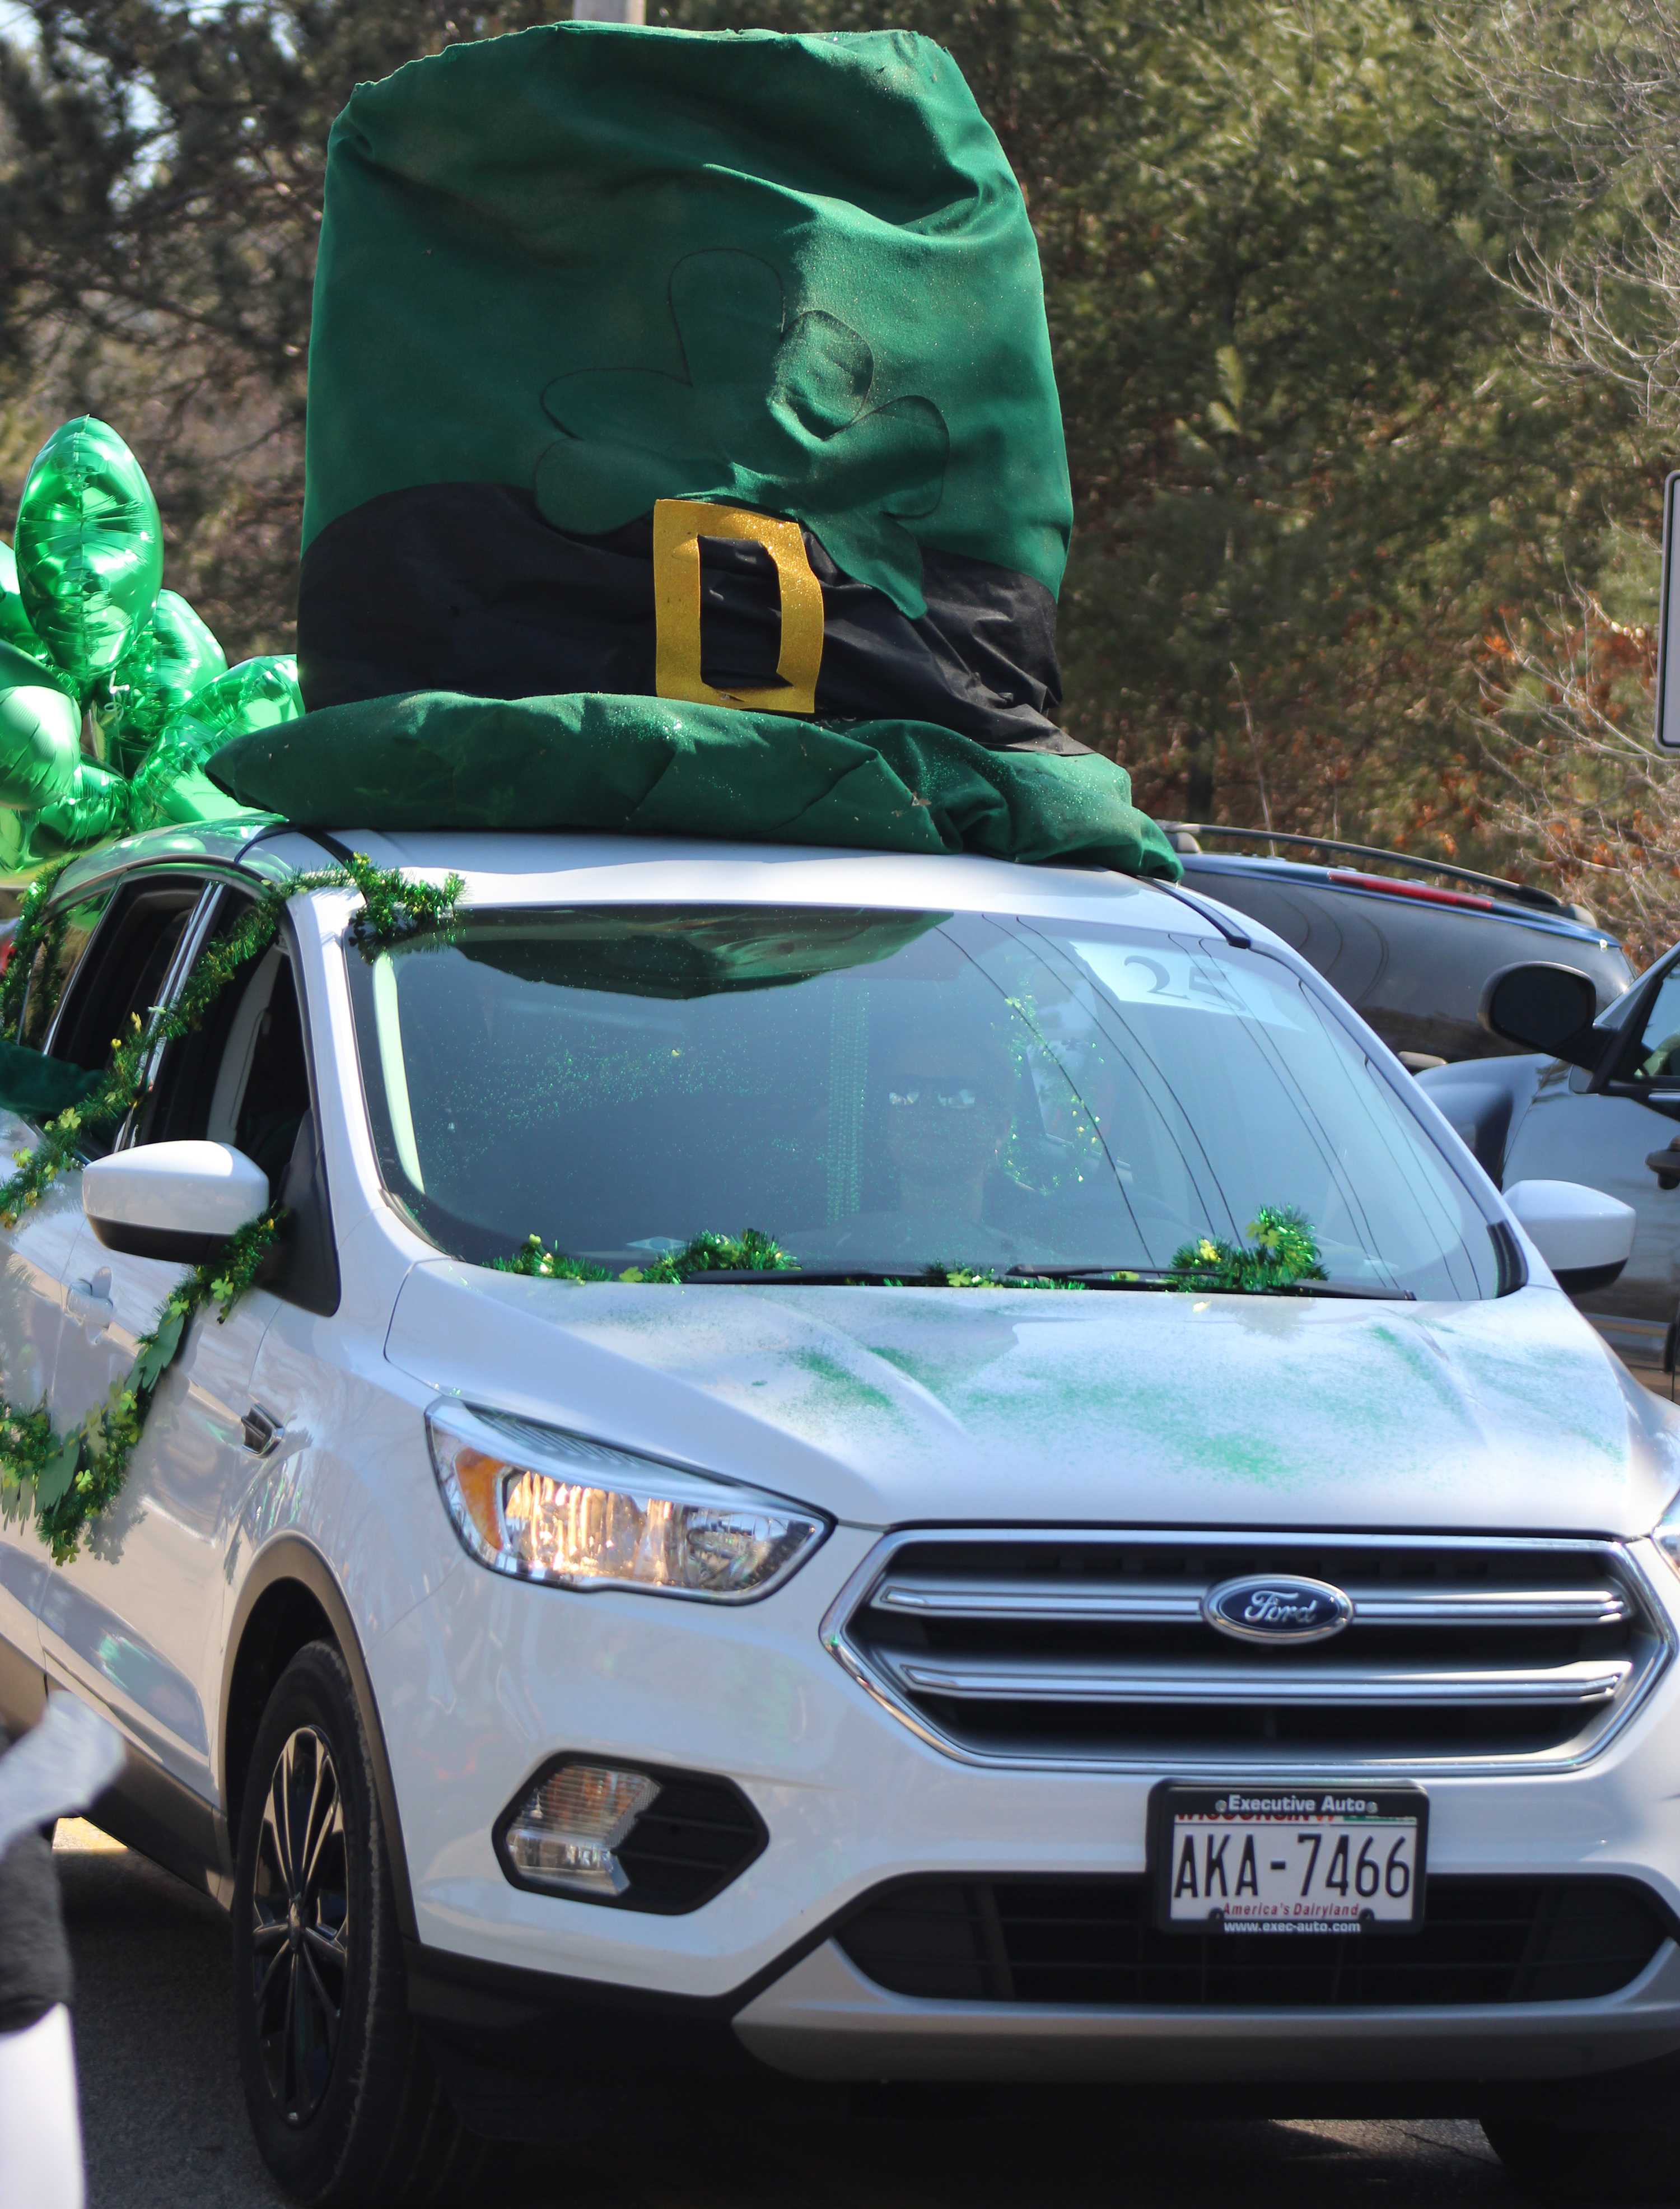 It wasn't just people donning green leprechaun hats at the Mooseyard St. Patrick's Day parade March 13. Vehicles were also decorated for the holiday event.(Lee Pulaski   NEW Media)